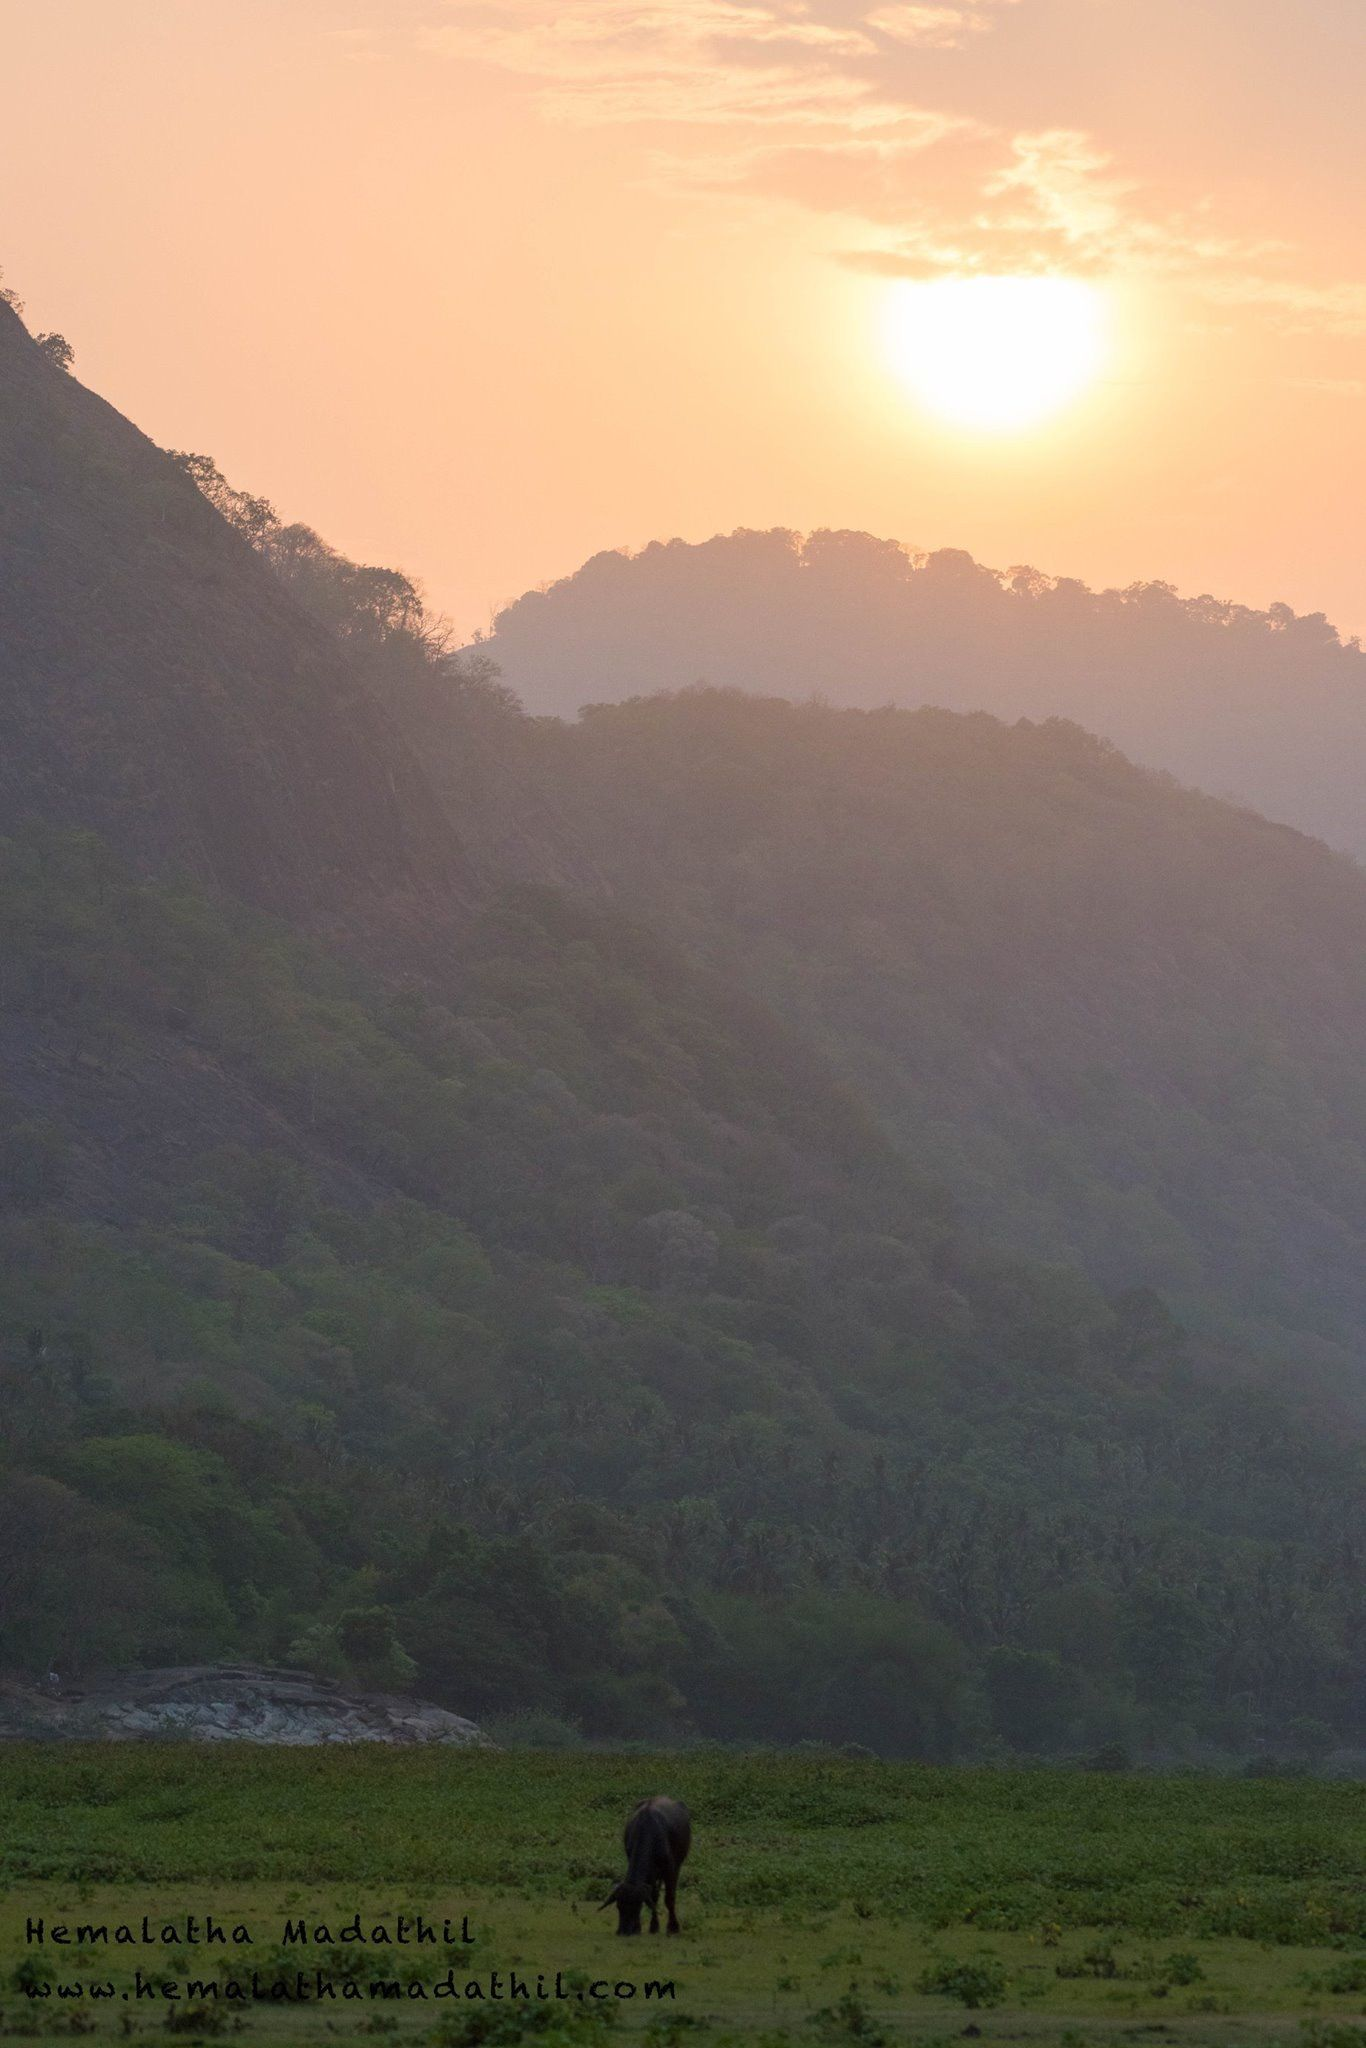 Pin By Hemalatha Madathil On Photographic Passion Nature Natural Landmarks Outdoor